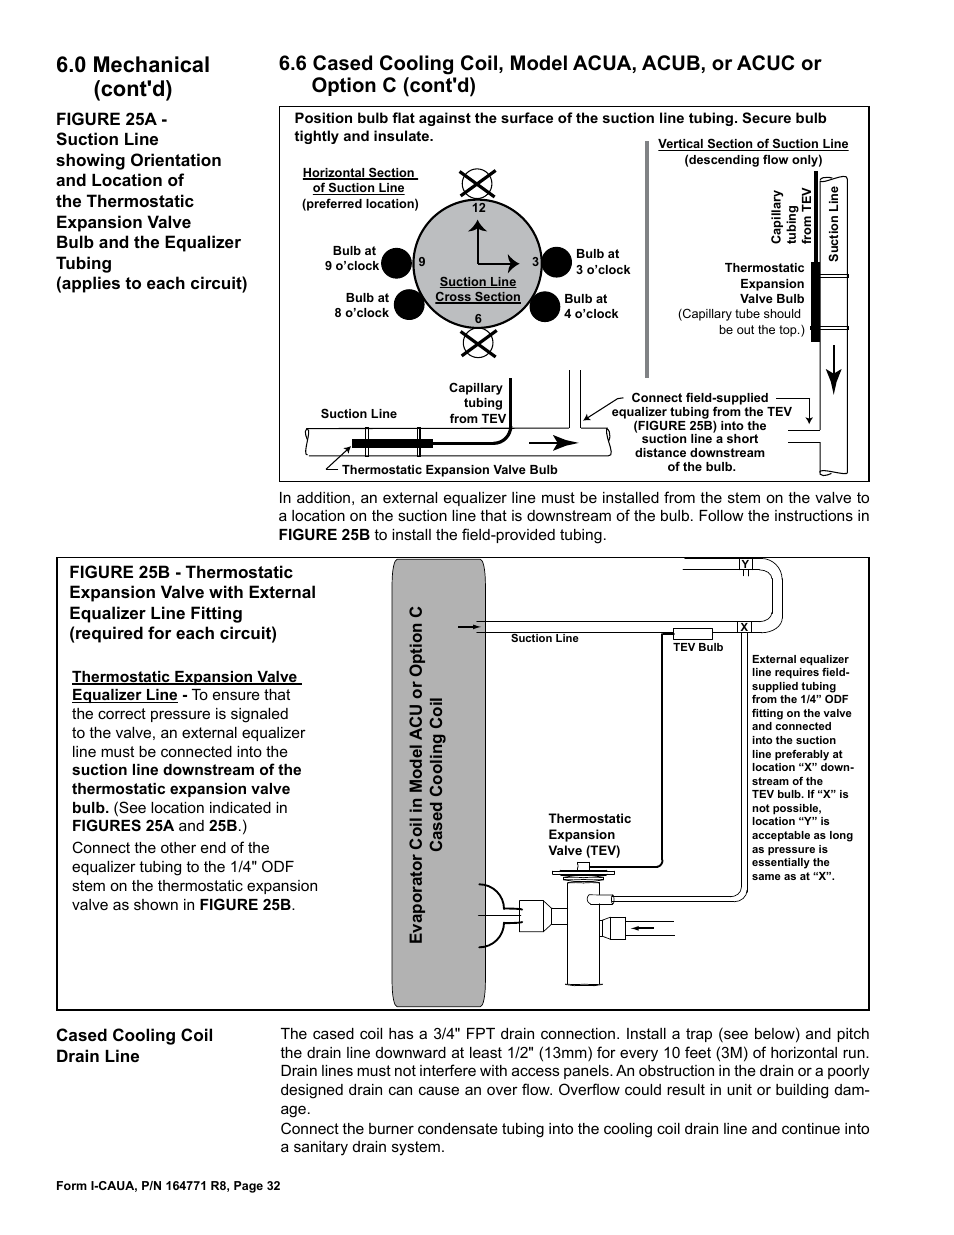 0 Mechanical Contd Reznor Caua Unit Installation Manual User Expansion Valve Diagram Page 32 44